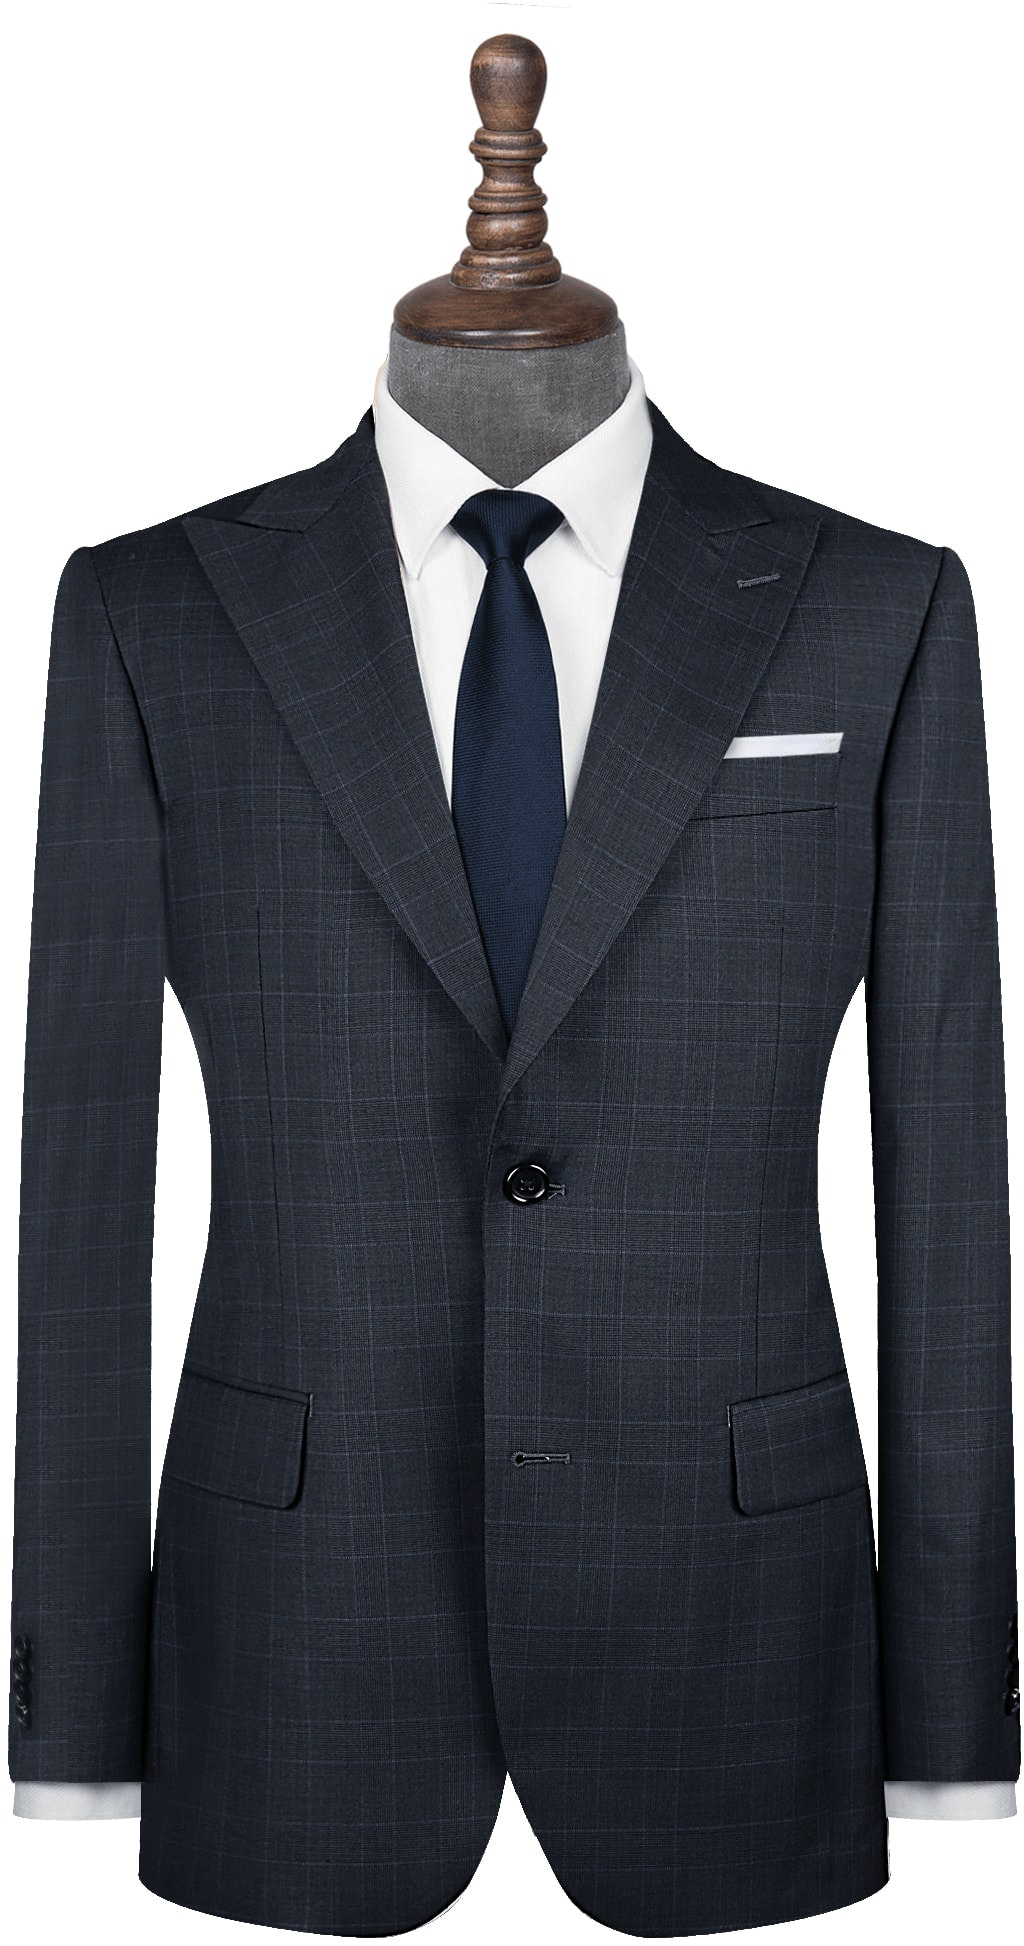 InStitchu Collection The Rochford mens suit